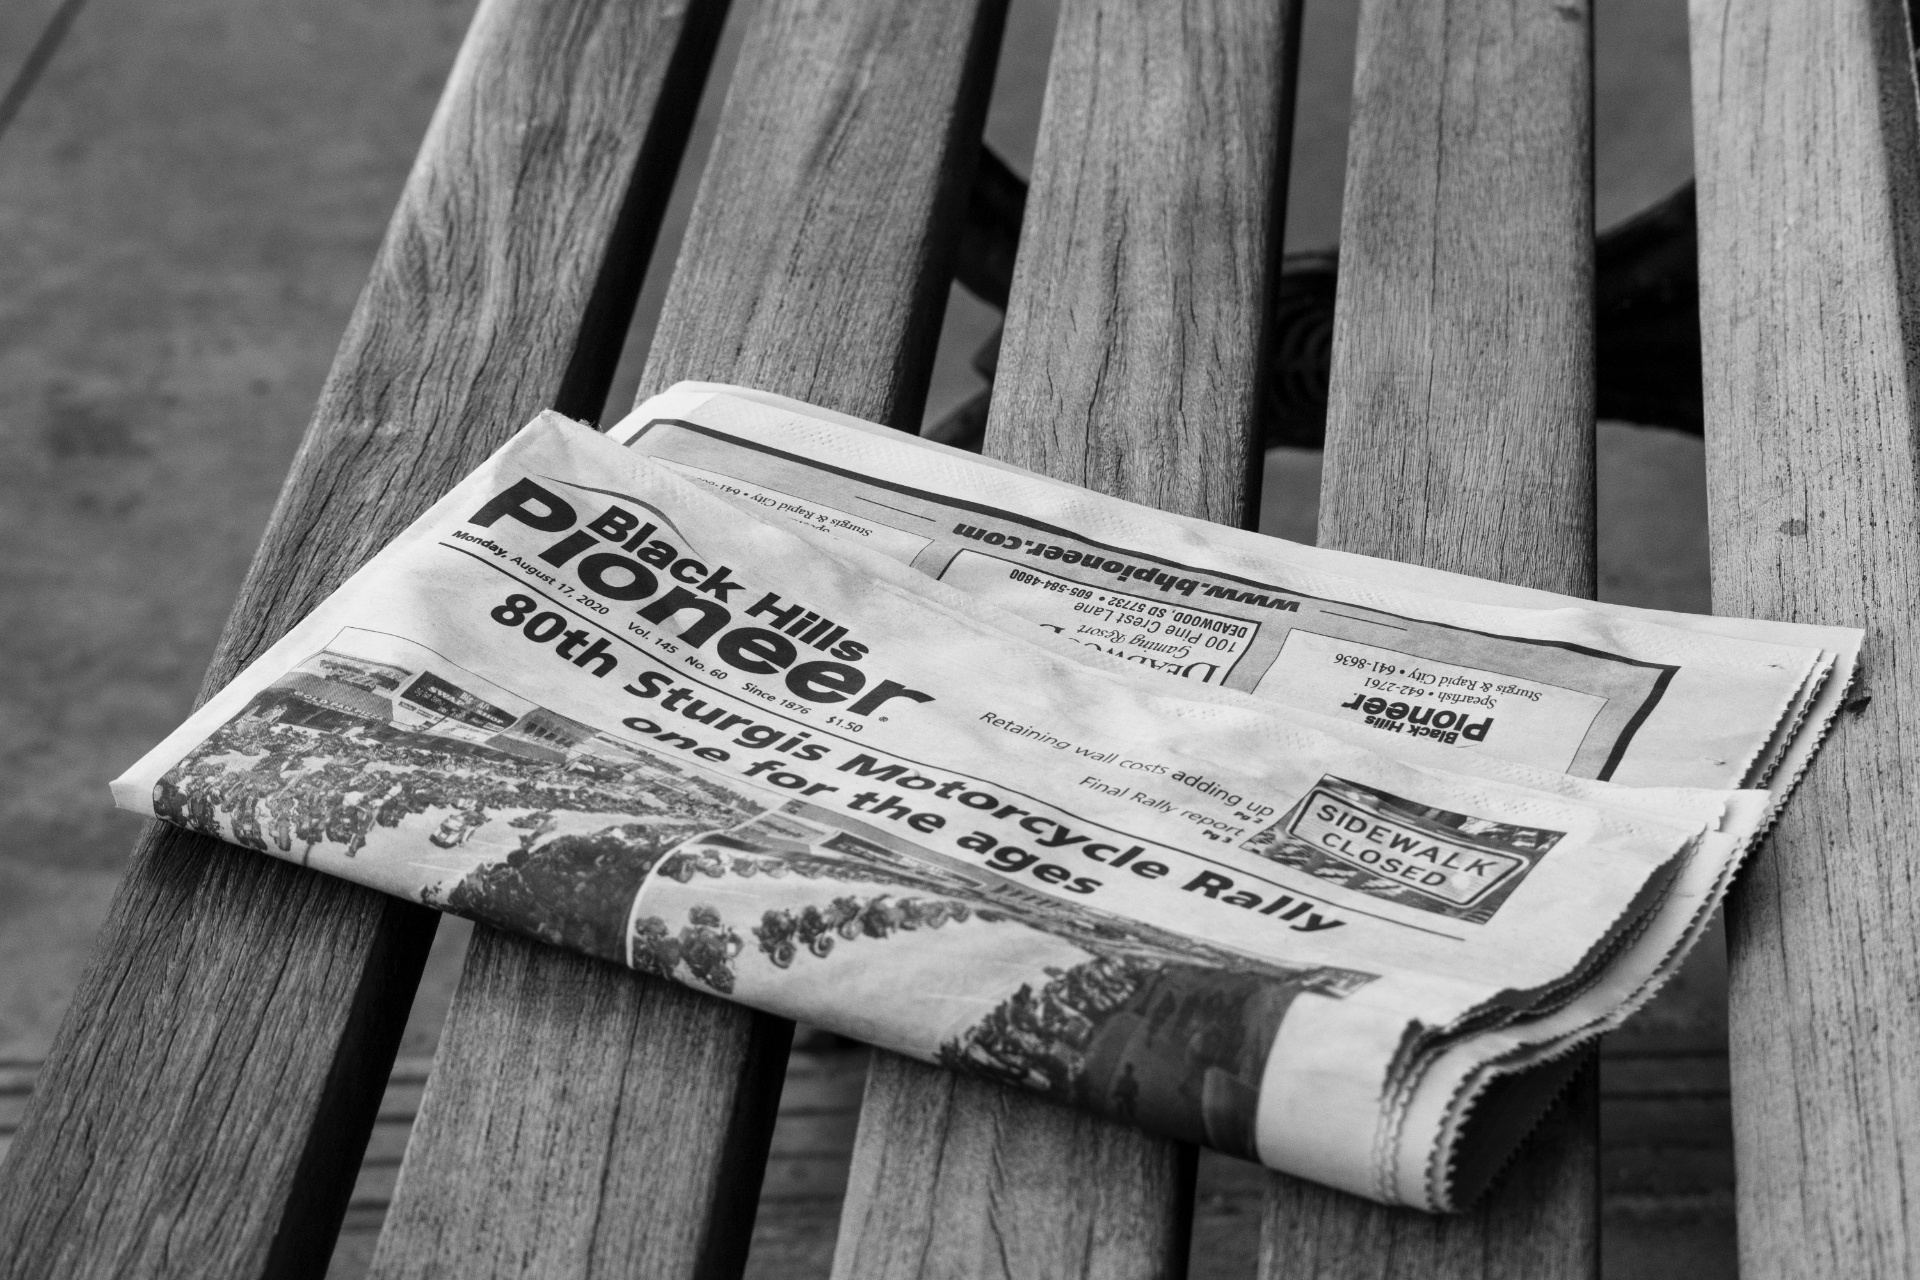 A greyscale image of a newspaper showing it